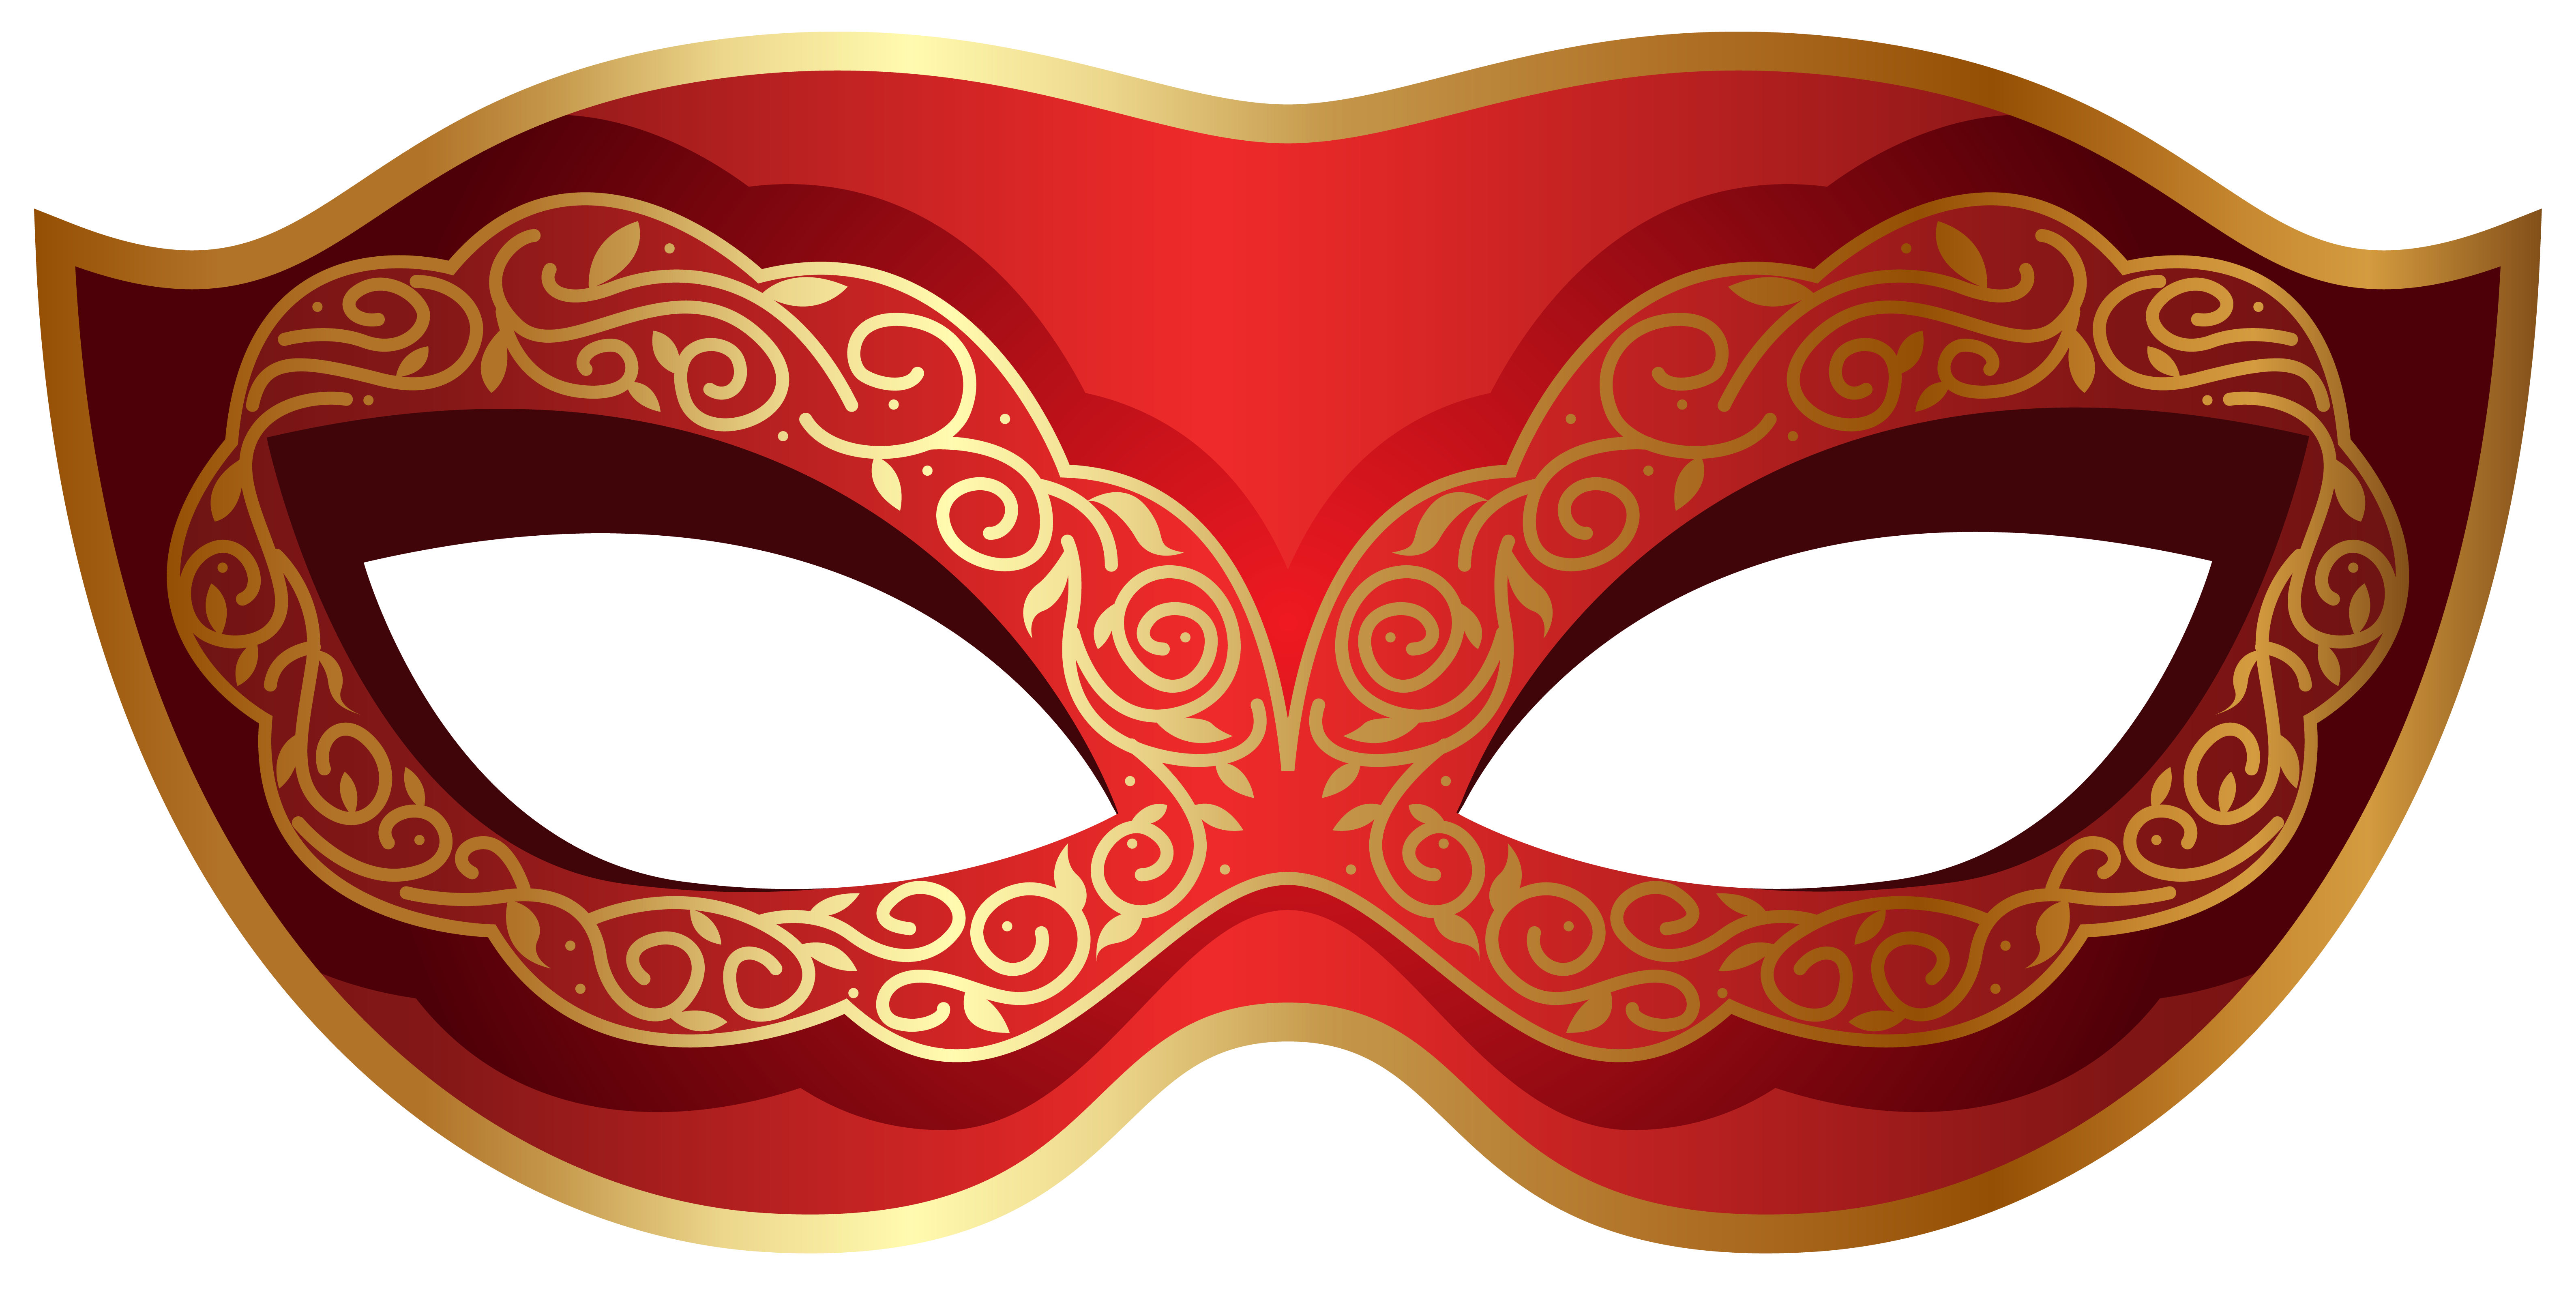 Masquerade png hd transparent. Mask clipart vector black and white download